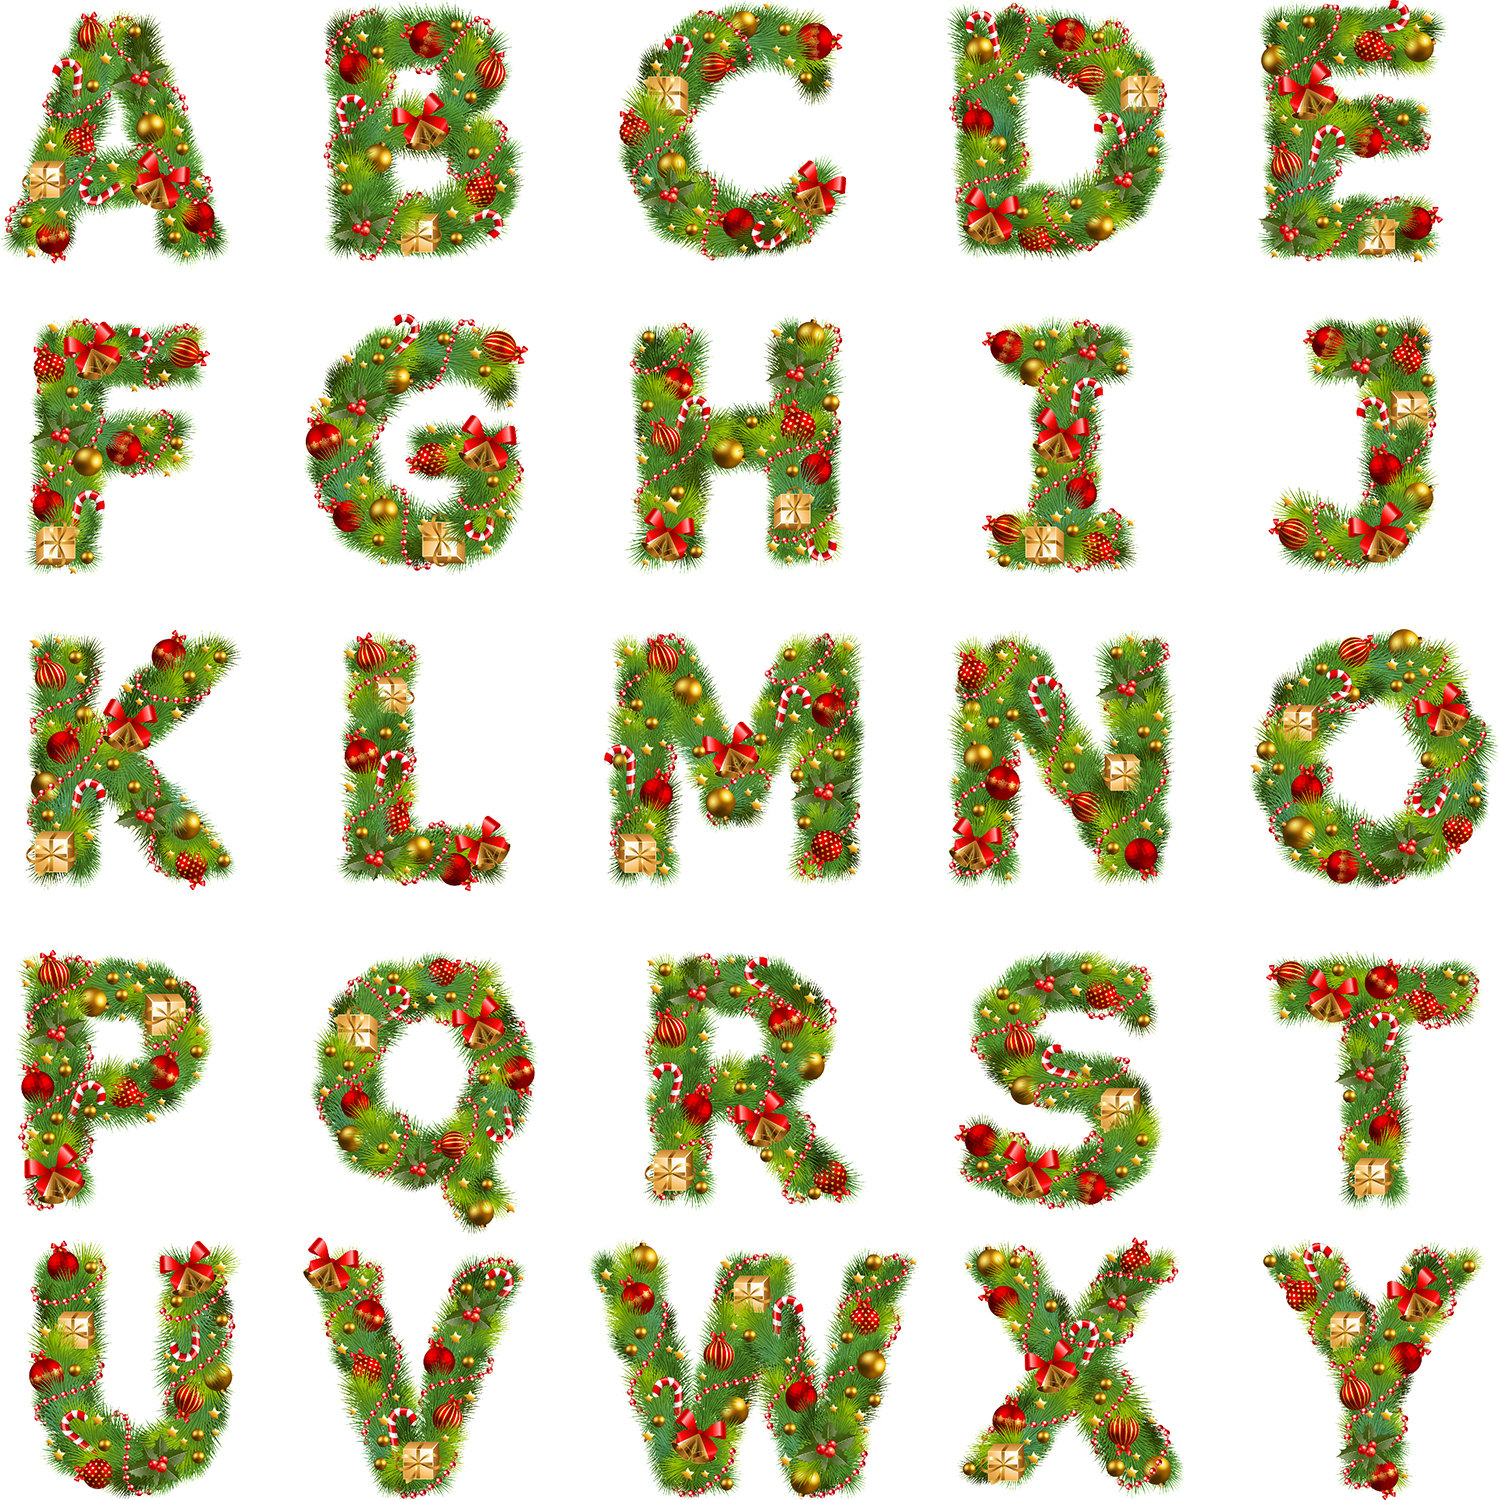 Christmas alphabet clipart graphic royalty free download Christmas alphabet clipart - ClipartFest graphic royalty free download